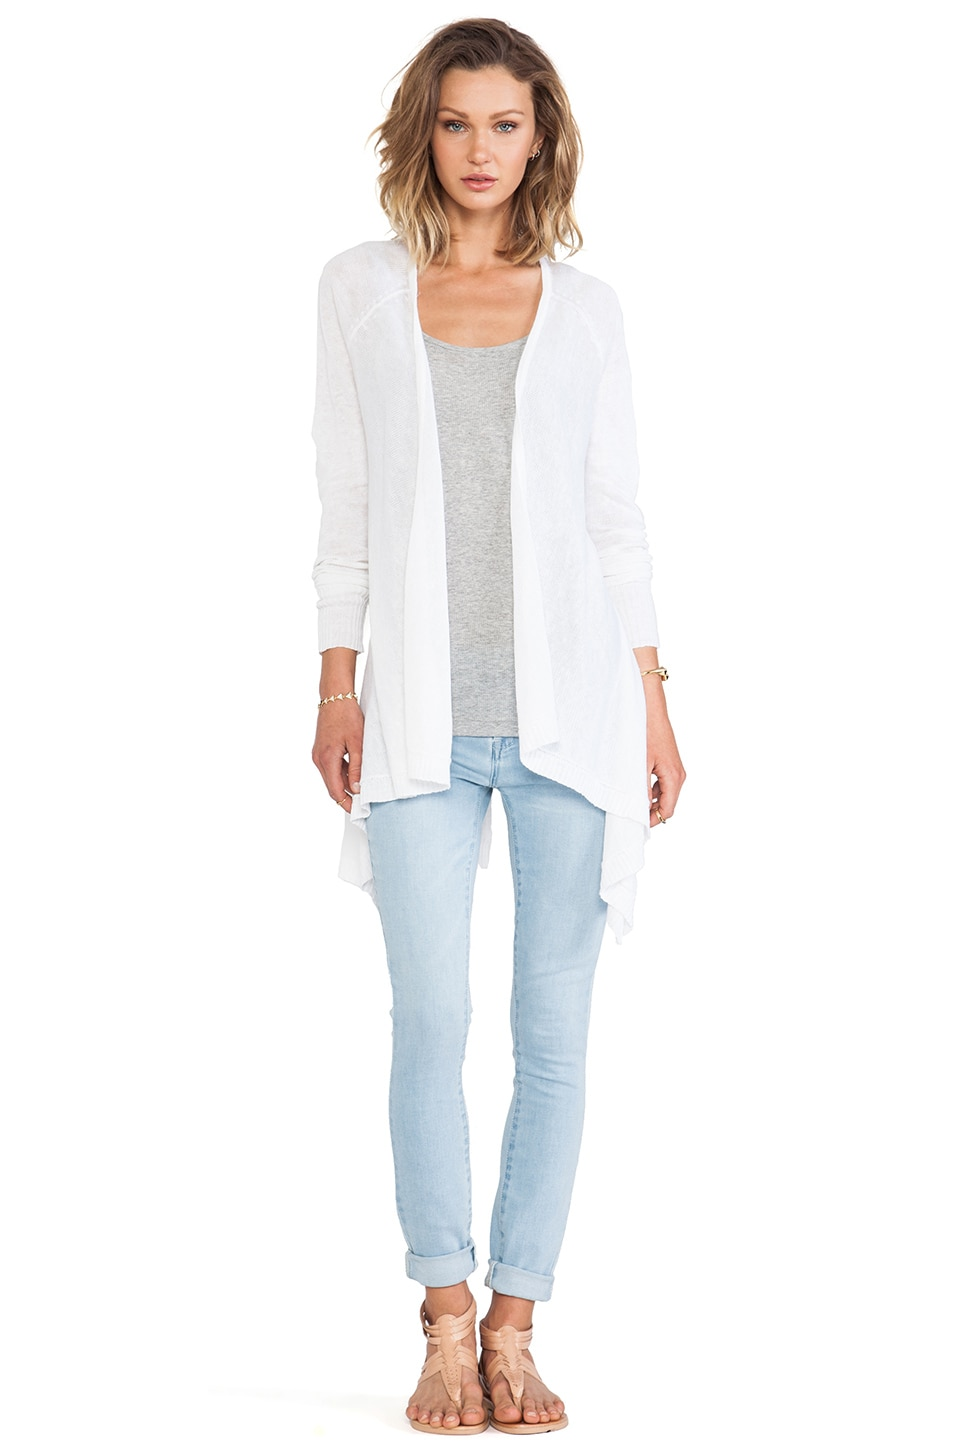 Central Park West Mumbai Cardigan in White